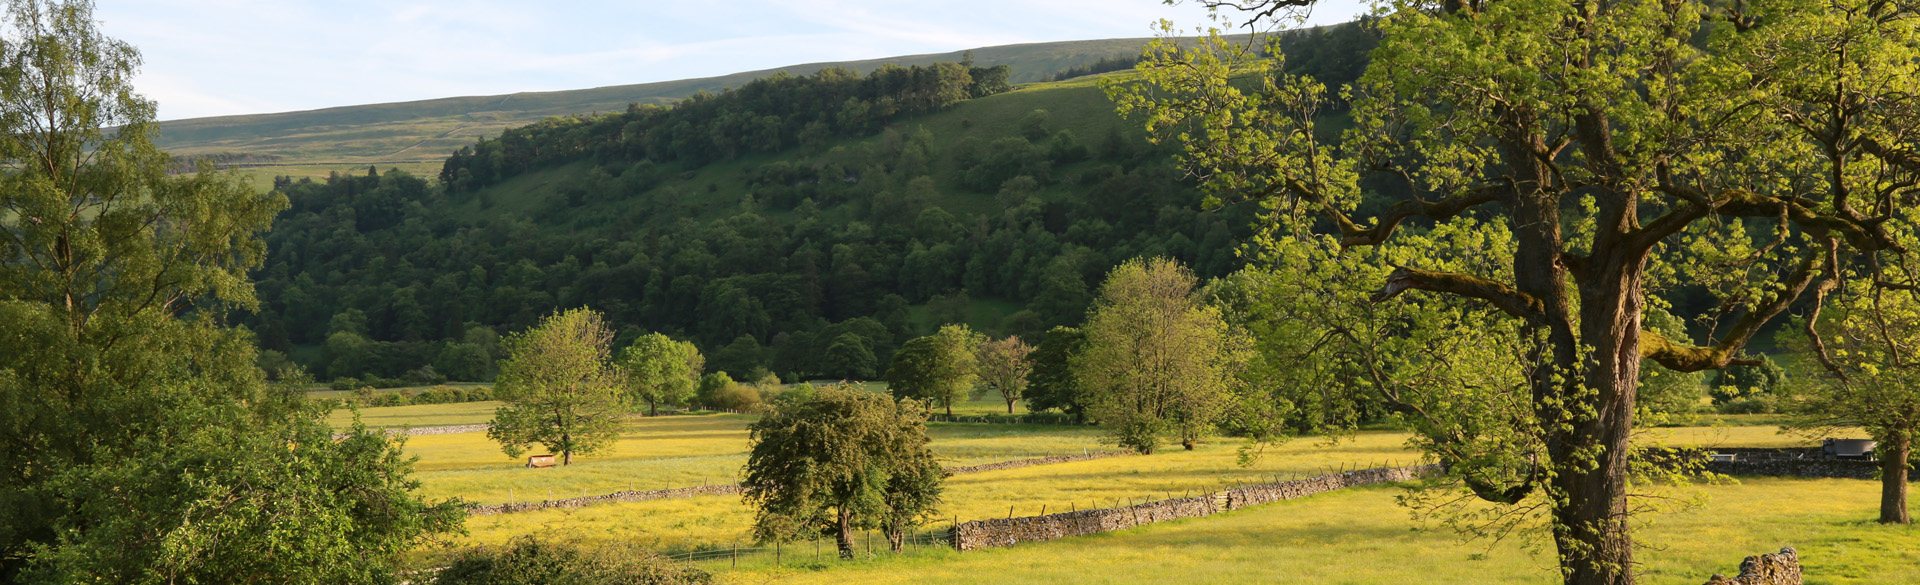 Meadow in early evening